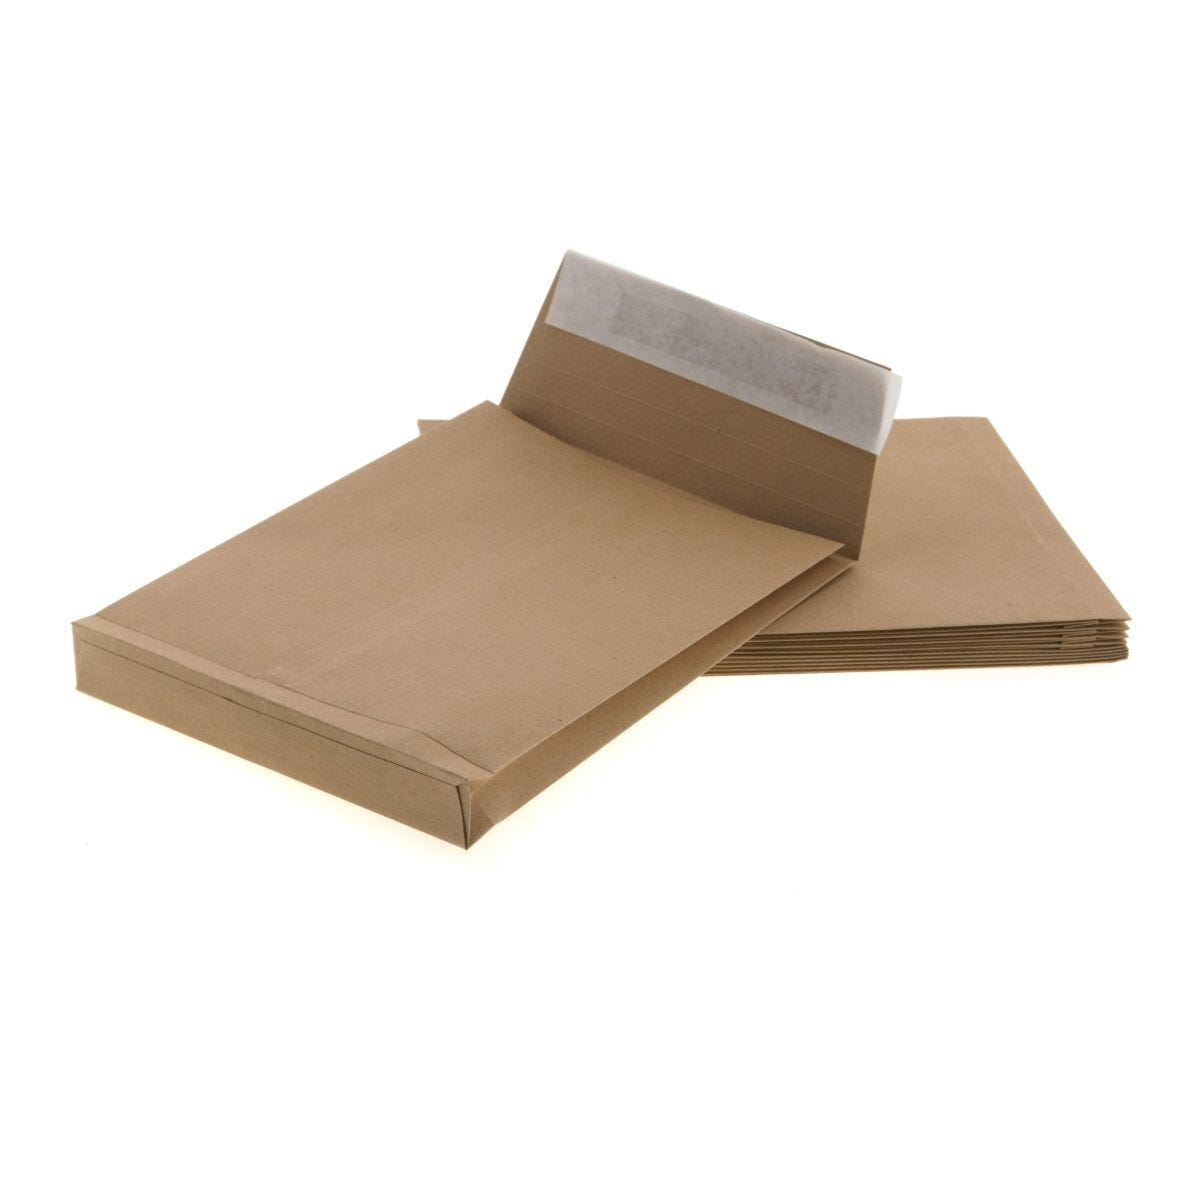 Ryman Heavy Duty Gusset Envelopes C5 130gsm Peel & Seal Pack of 10